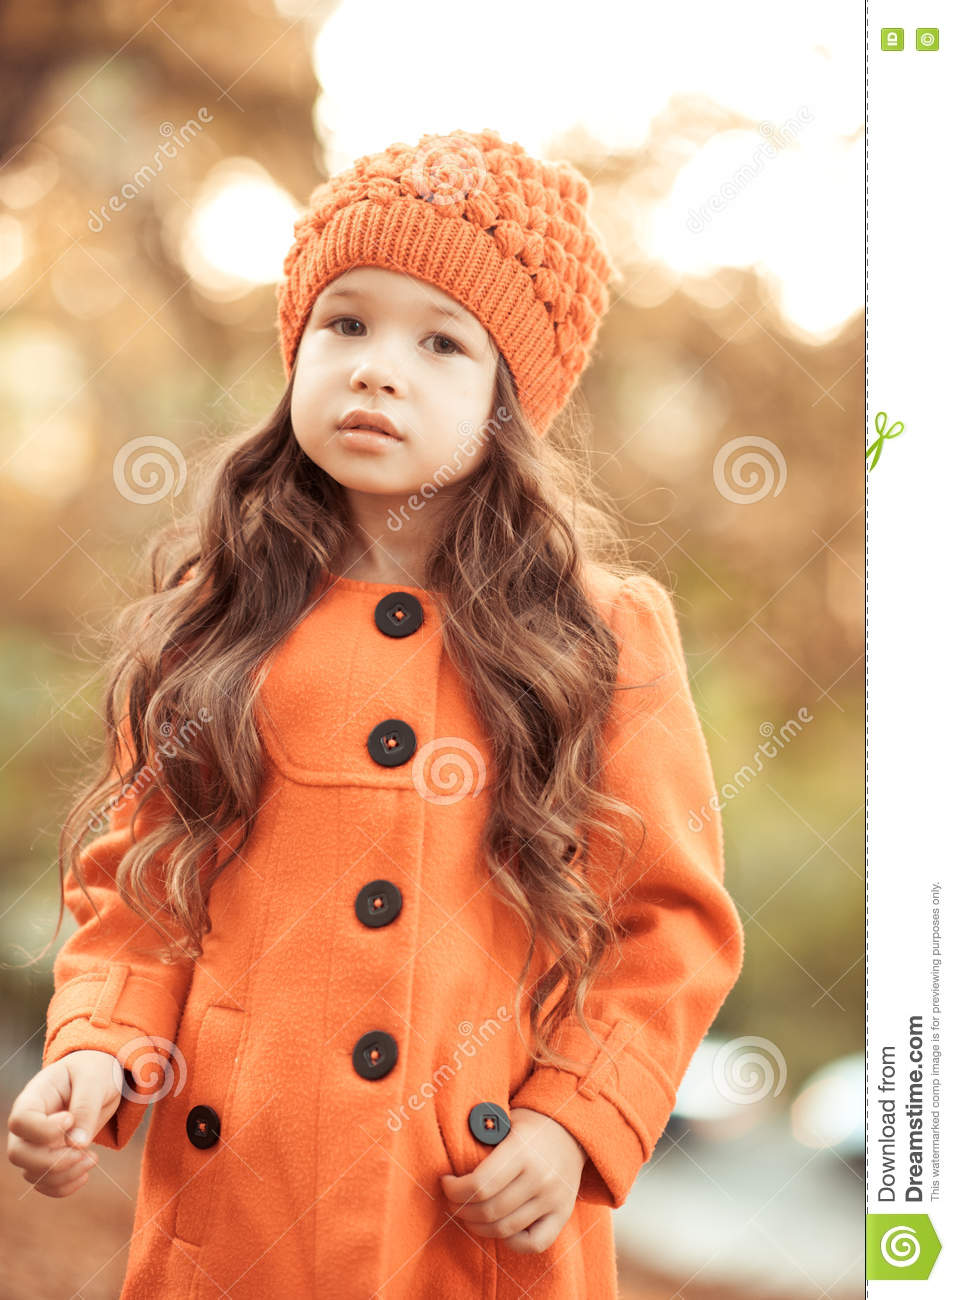 ad8e69478 Stylish Baby Girl In Winter Jacket Outdoors Stock Photo - Image of ...